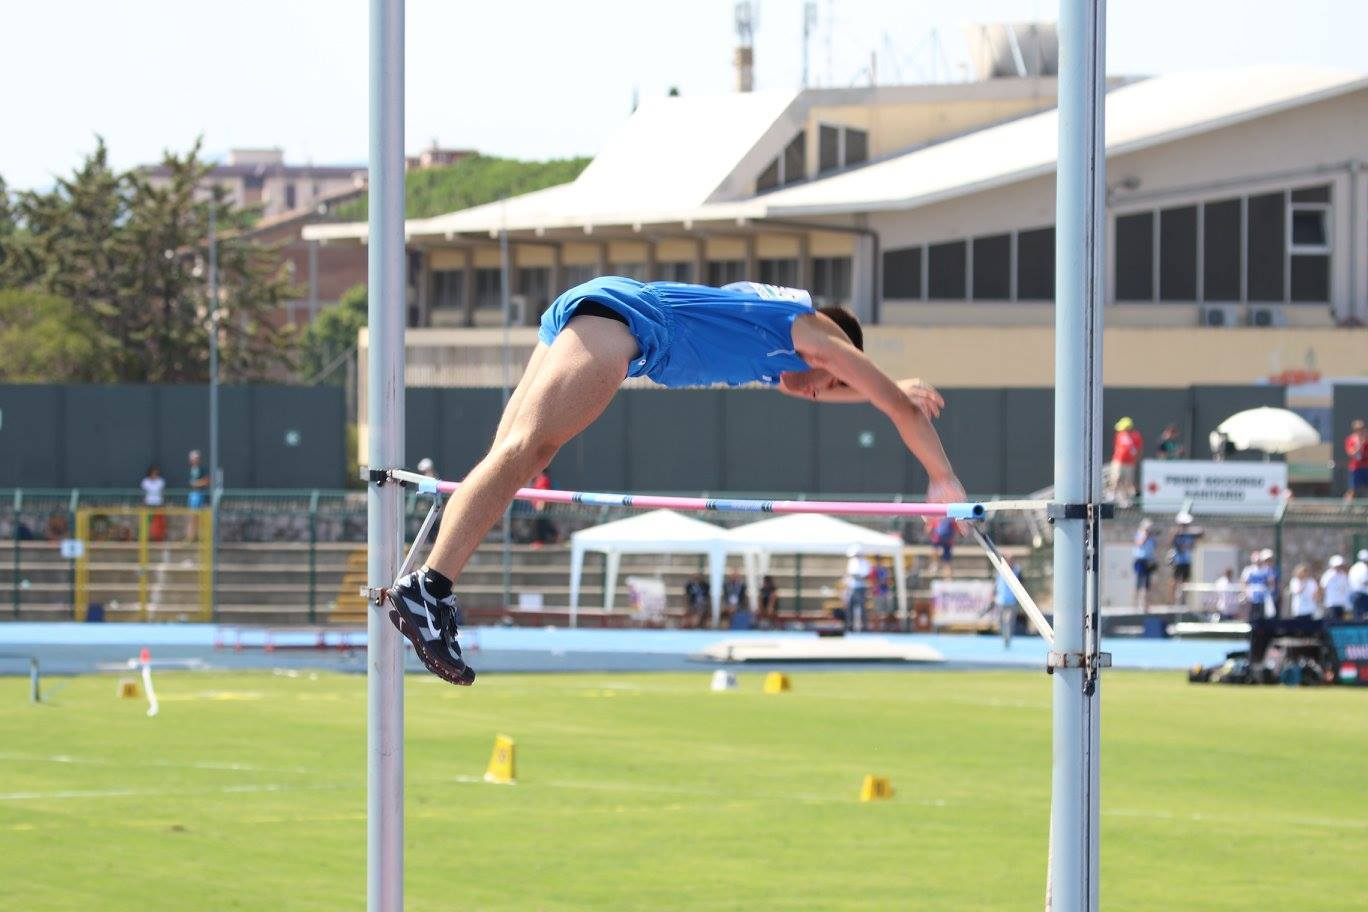 Coaching the Pole Vault by Dan Pfaff.